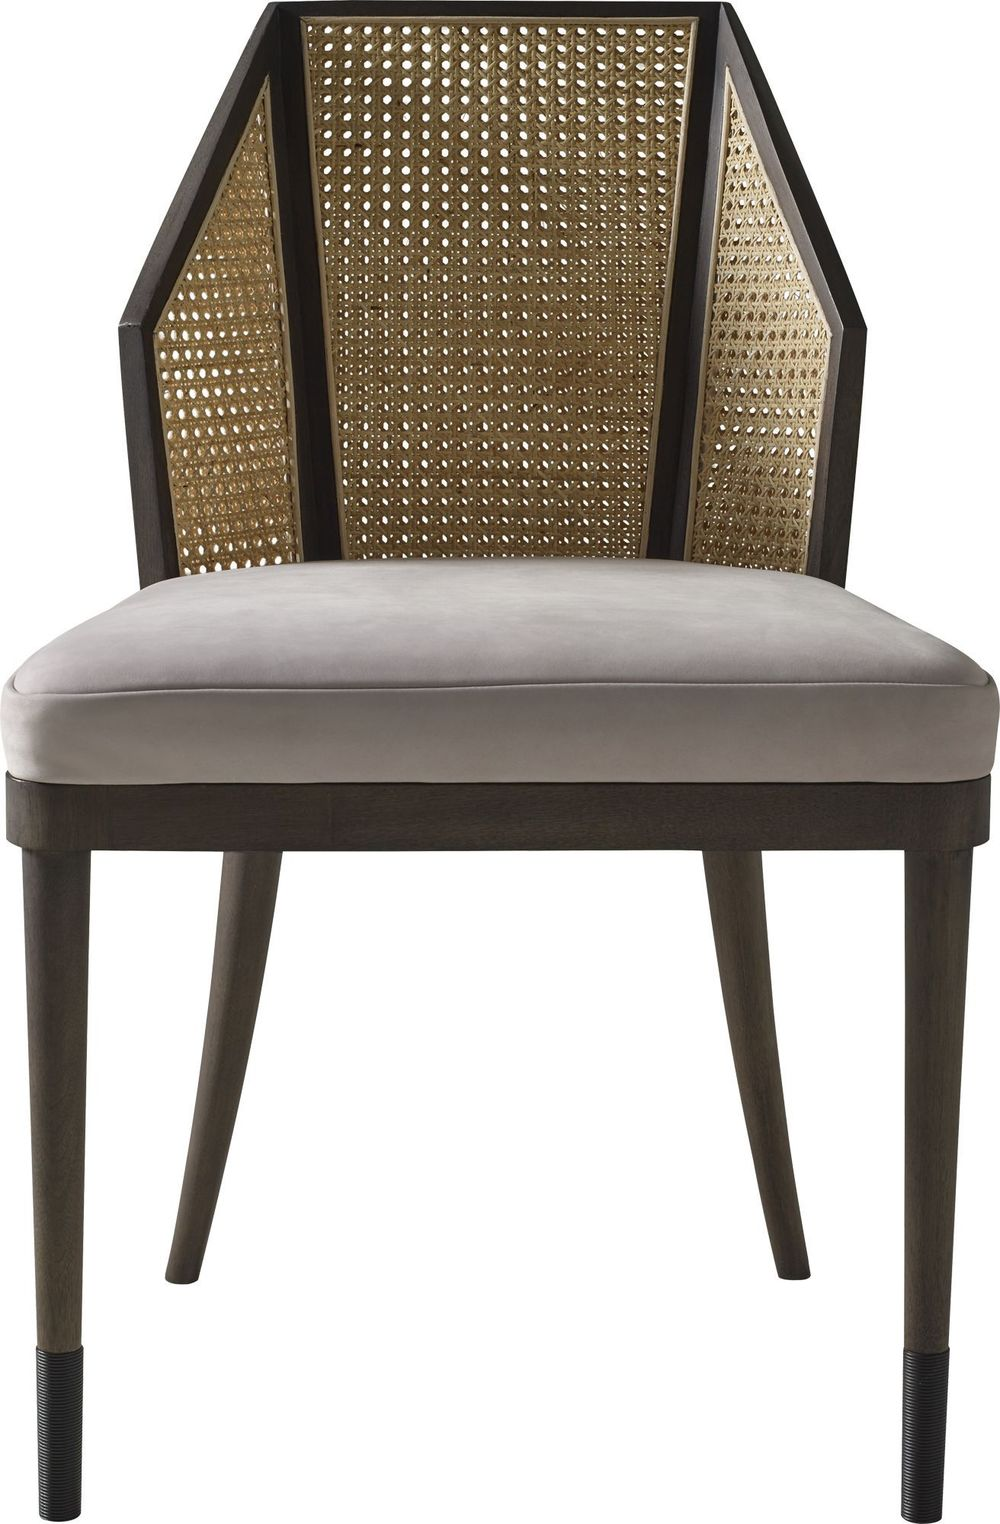 Baker Furniture - Cane Side Chair